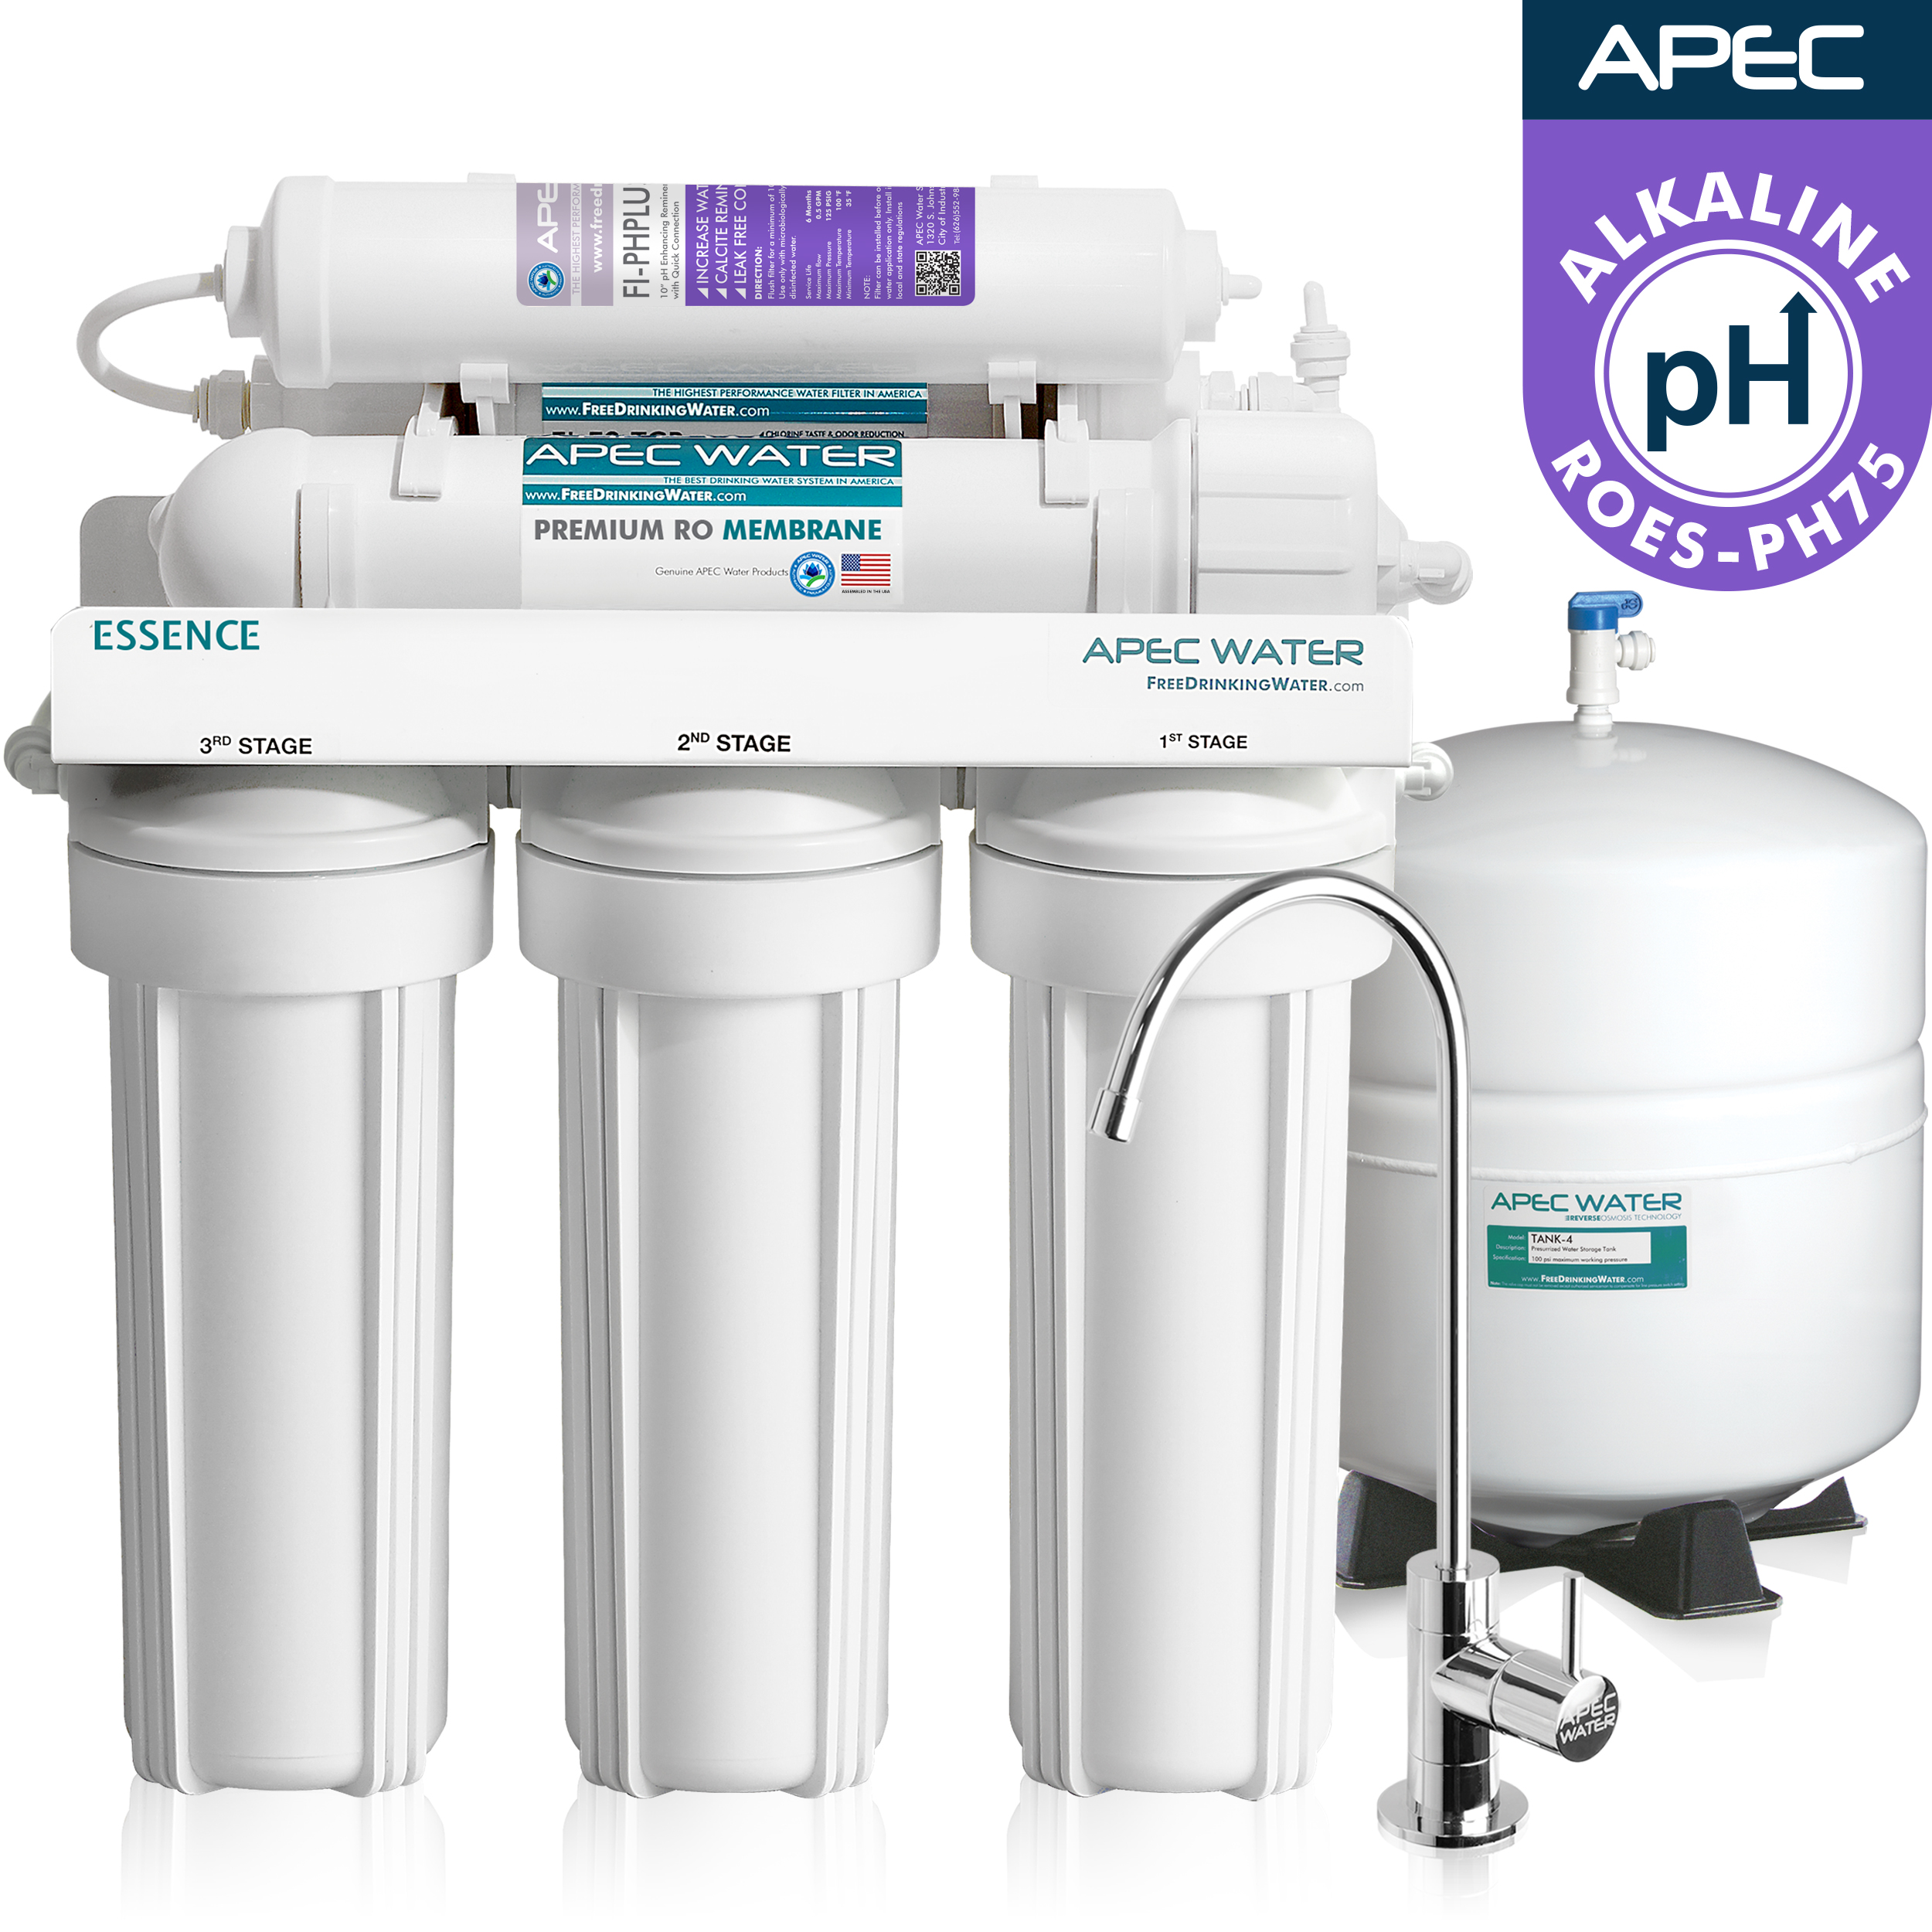 APEC Top Tier Alkaline Mineral Ph+ Ultra Safe Reverse Osmosis Drinking Water Filter System... by